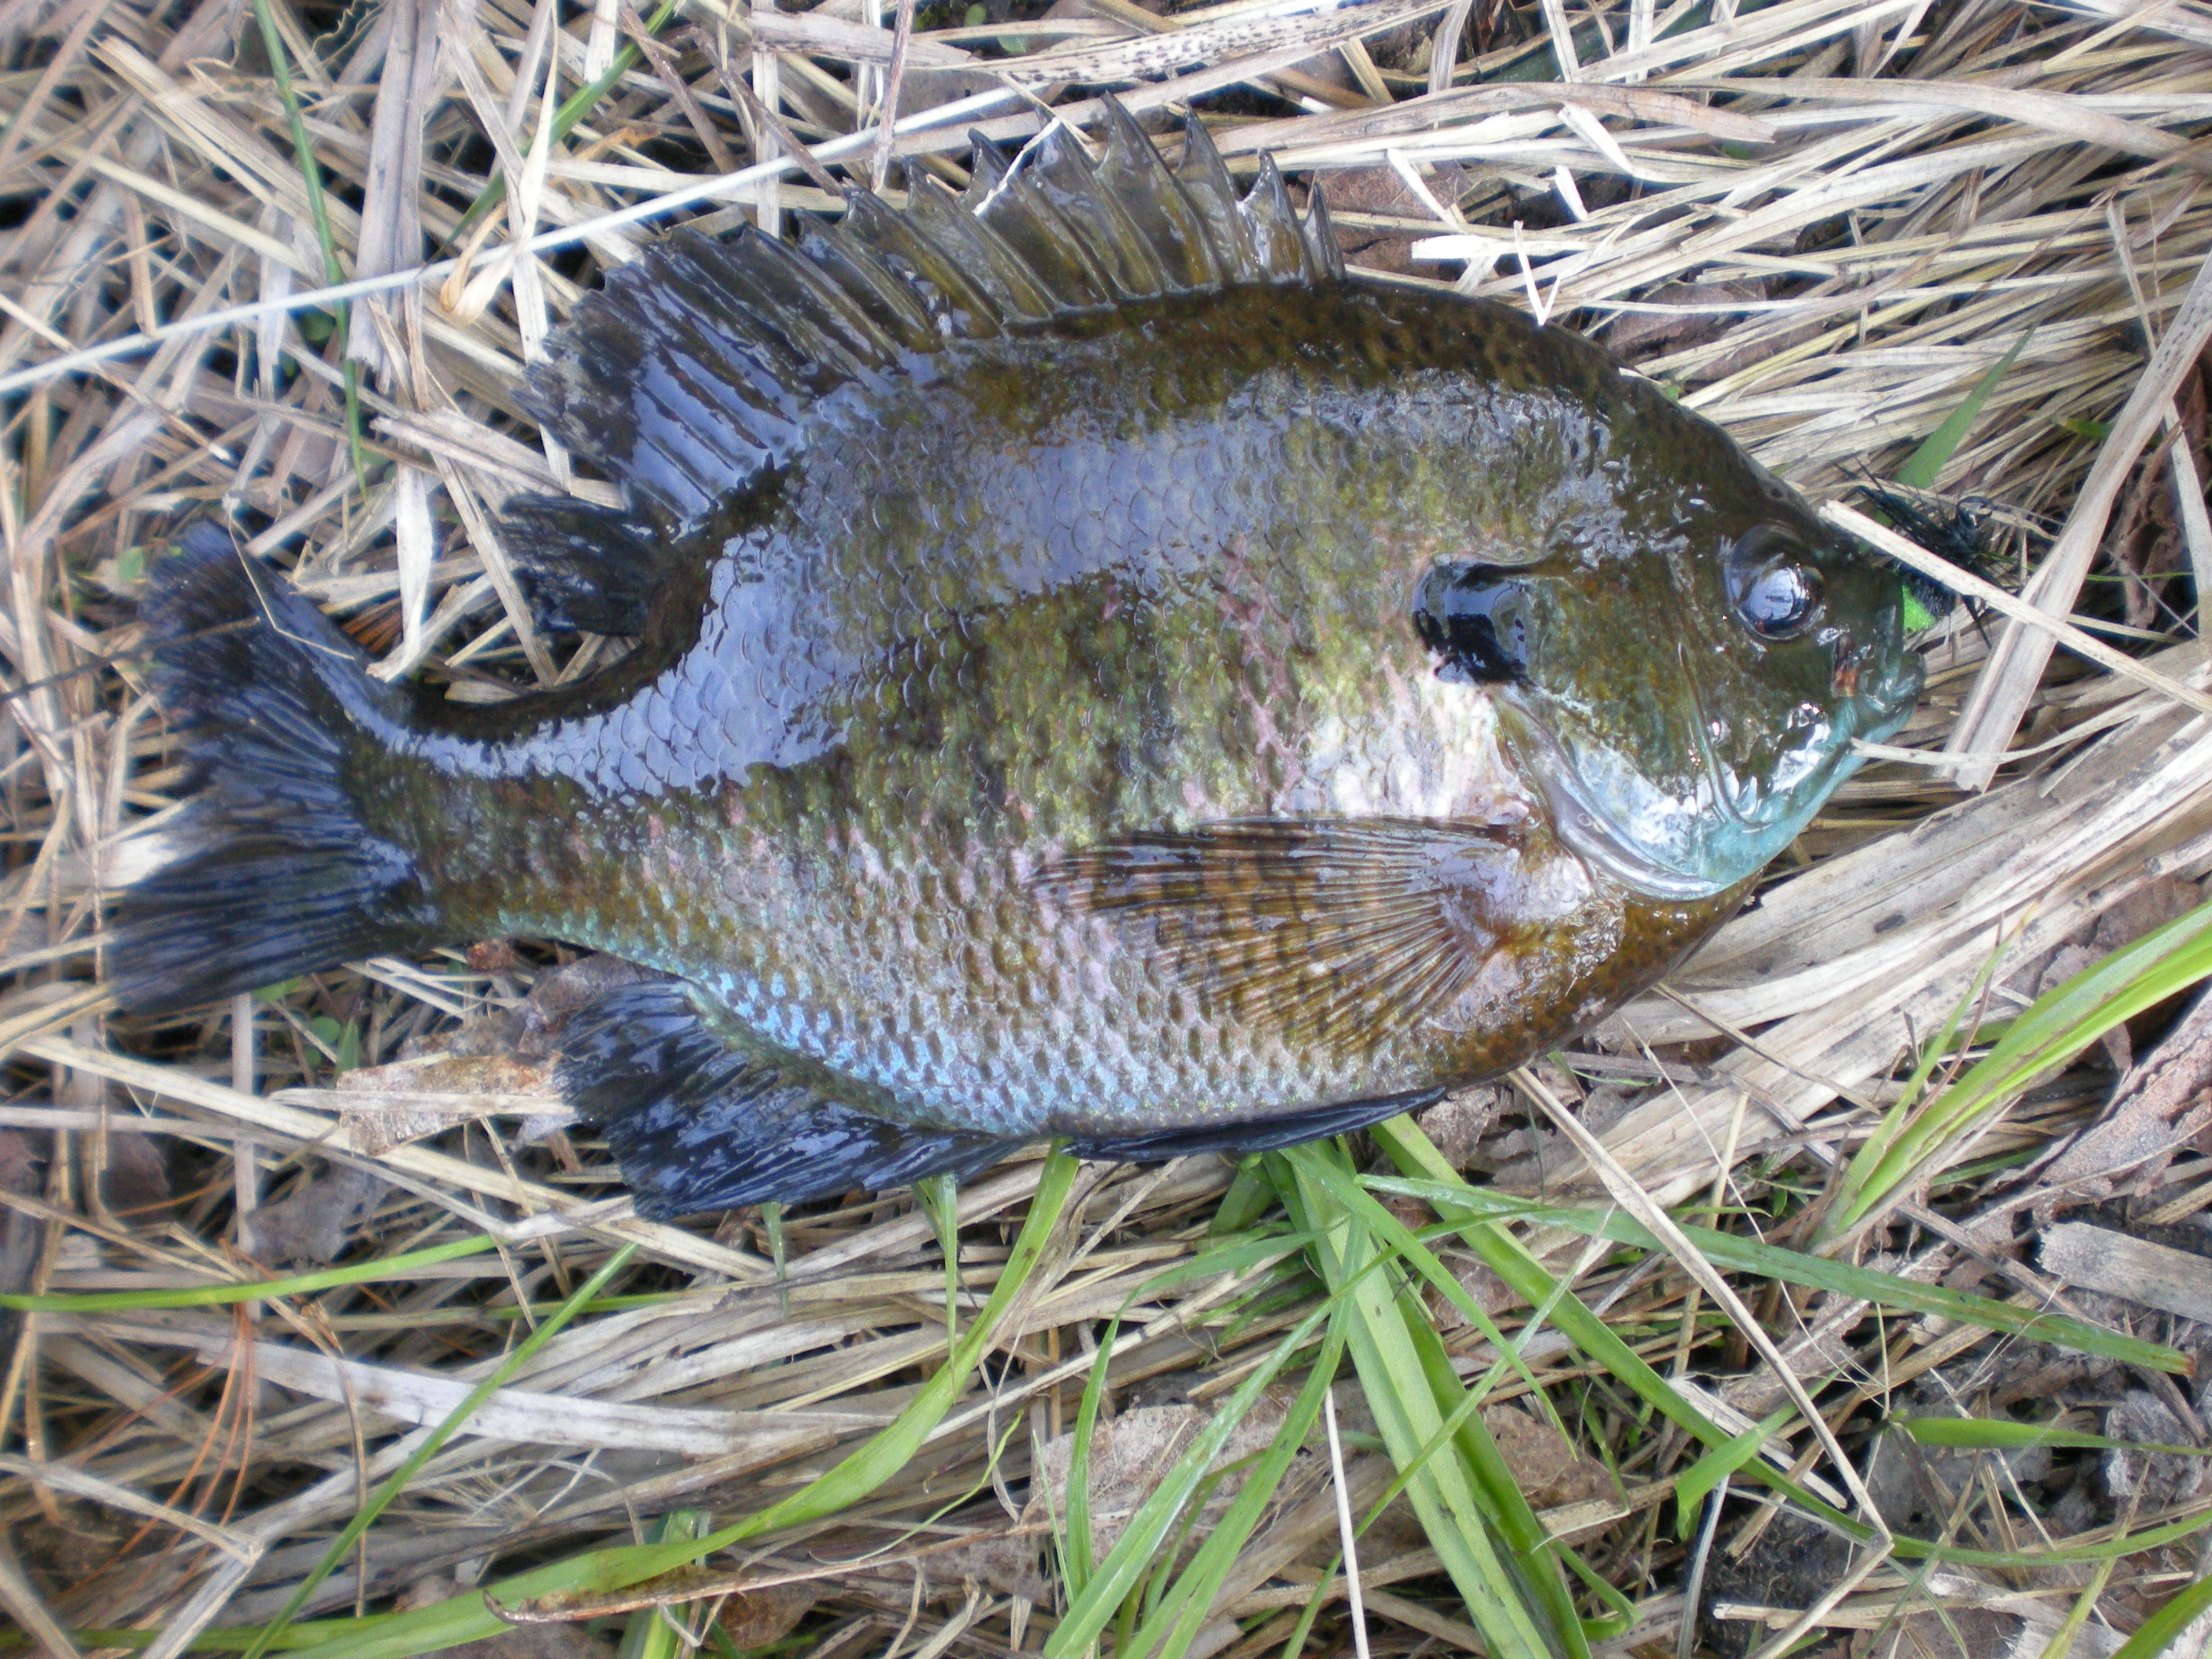 Only bluegill I have pulled from the Marsh so far, nice big male spawner